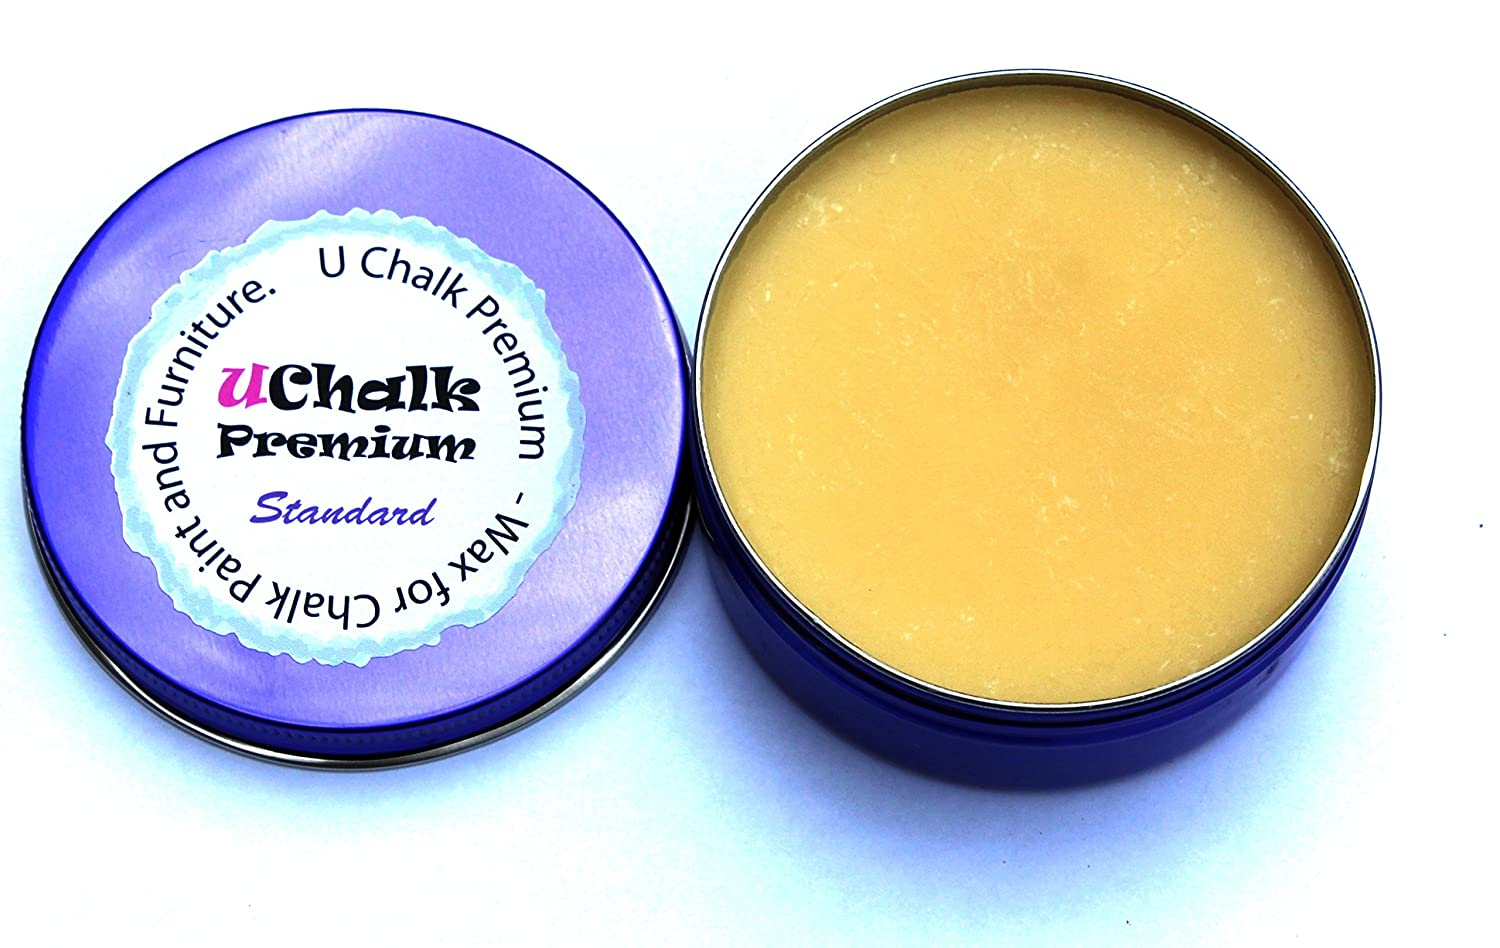 Chalk Paint Wax and Furniture Wax - Standard - 150ml UChalk